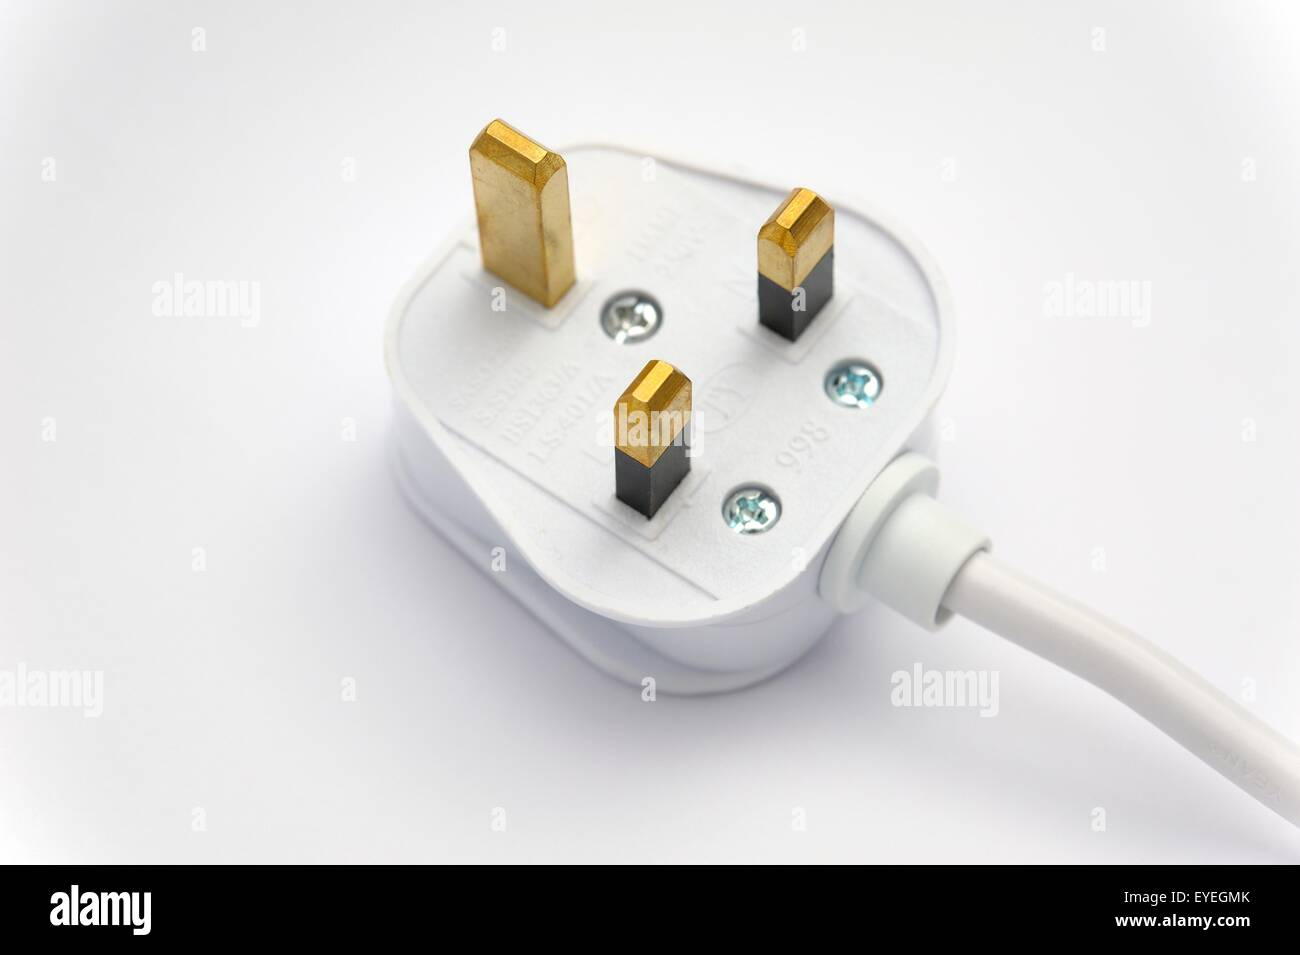 A 13 amp fused domestic 3 pin plug . - Stock Image